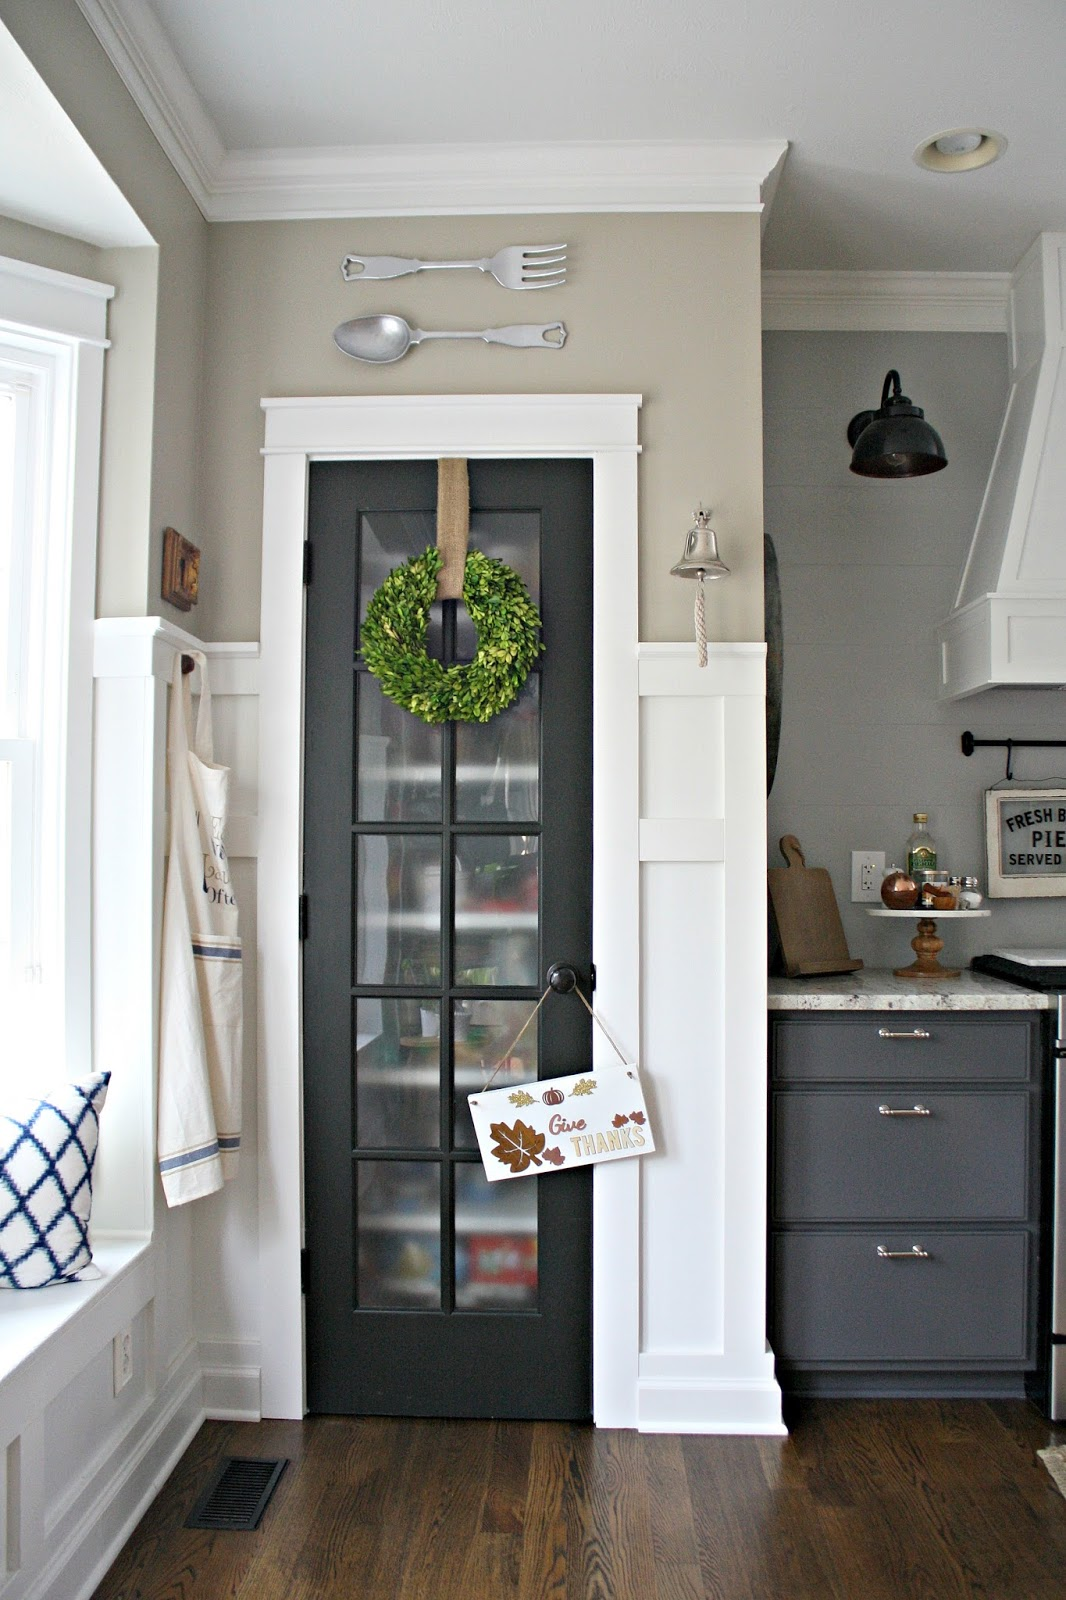 Spring cleaning just got a whole lot cheaper! Organize for less with these creative dollar store organization and storage ideas. There are ideas for every room in your house (kitchen, bathroom, laundry, closet, office and more!).